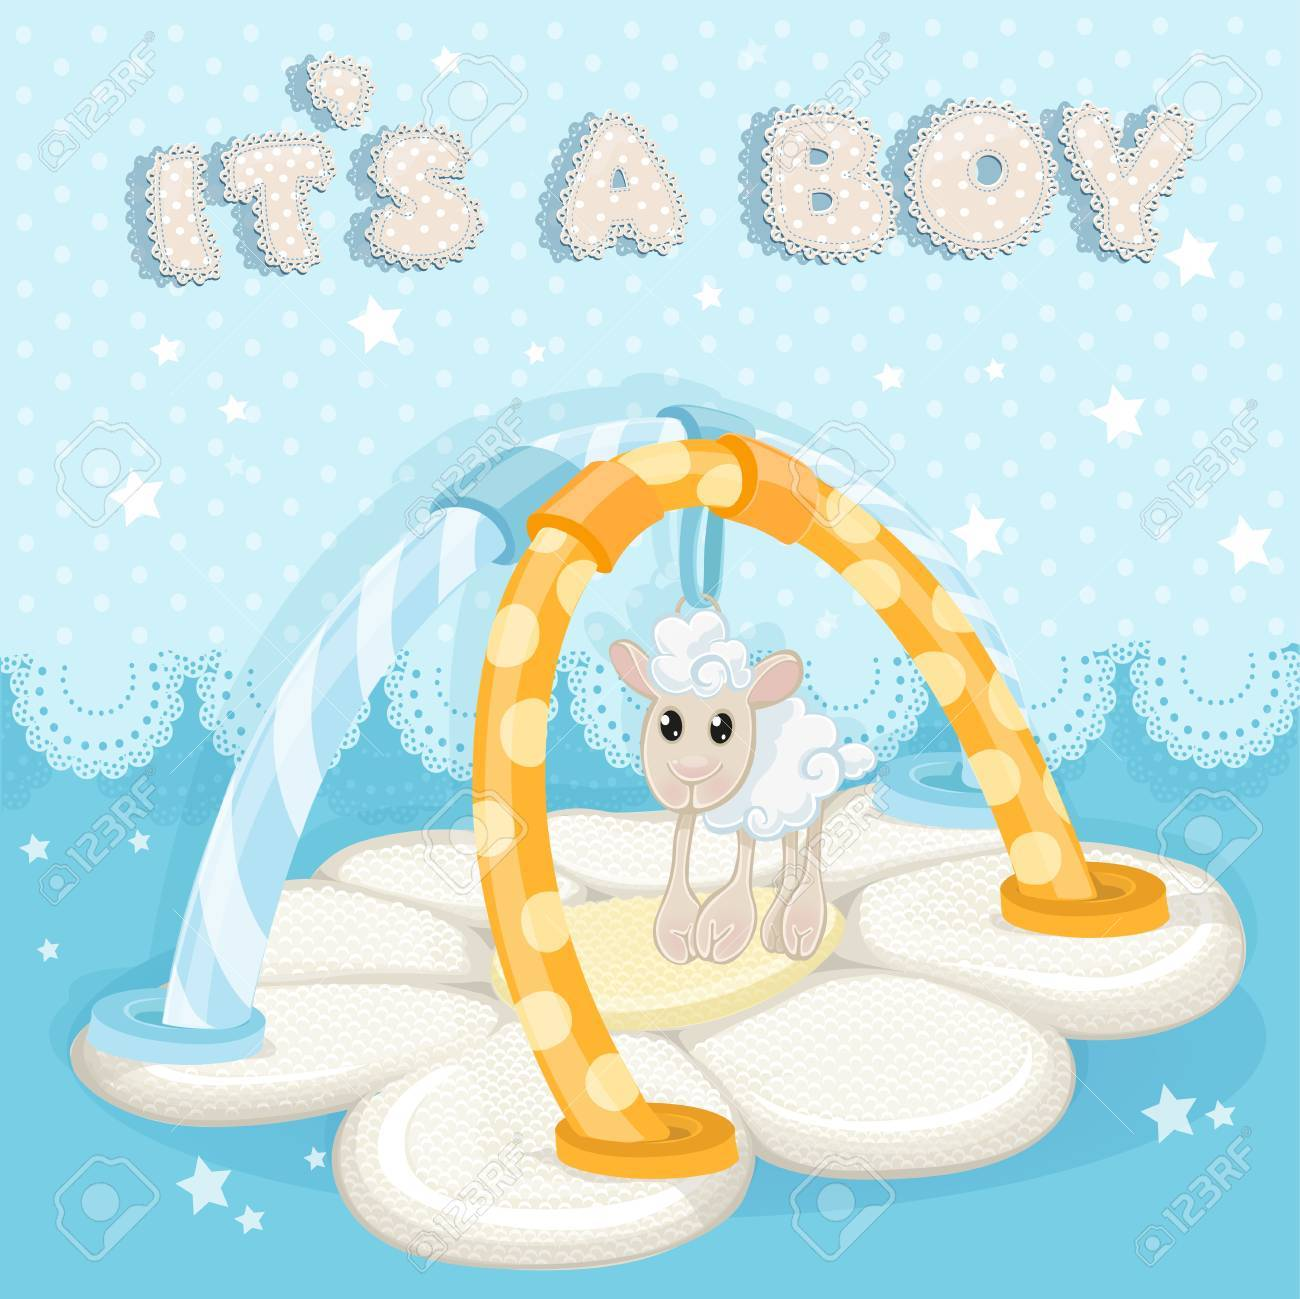 Greeting card with a children s rug is a boy Stock Vector - 19569874